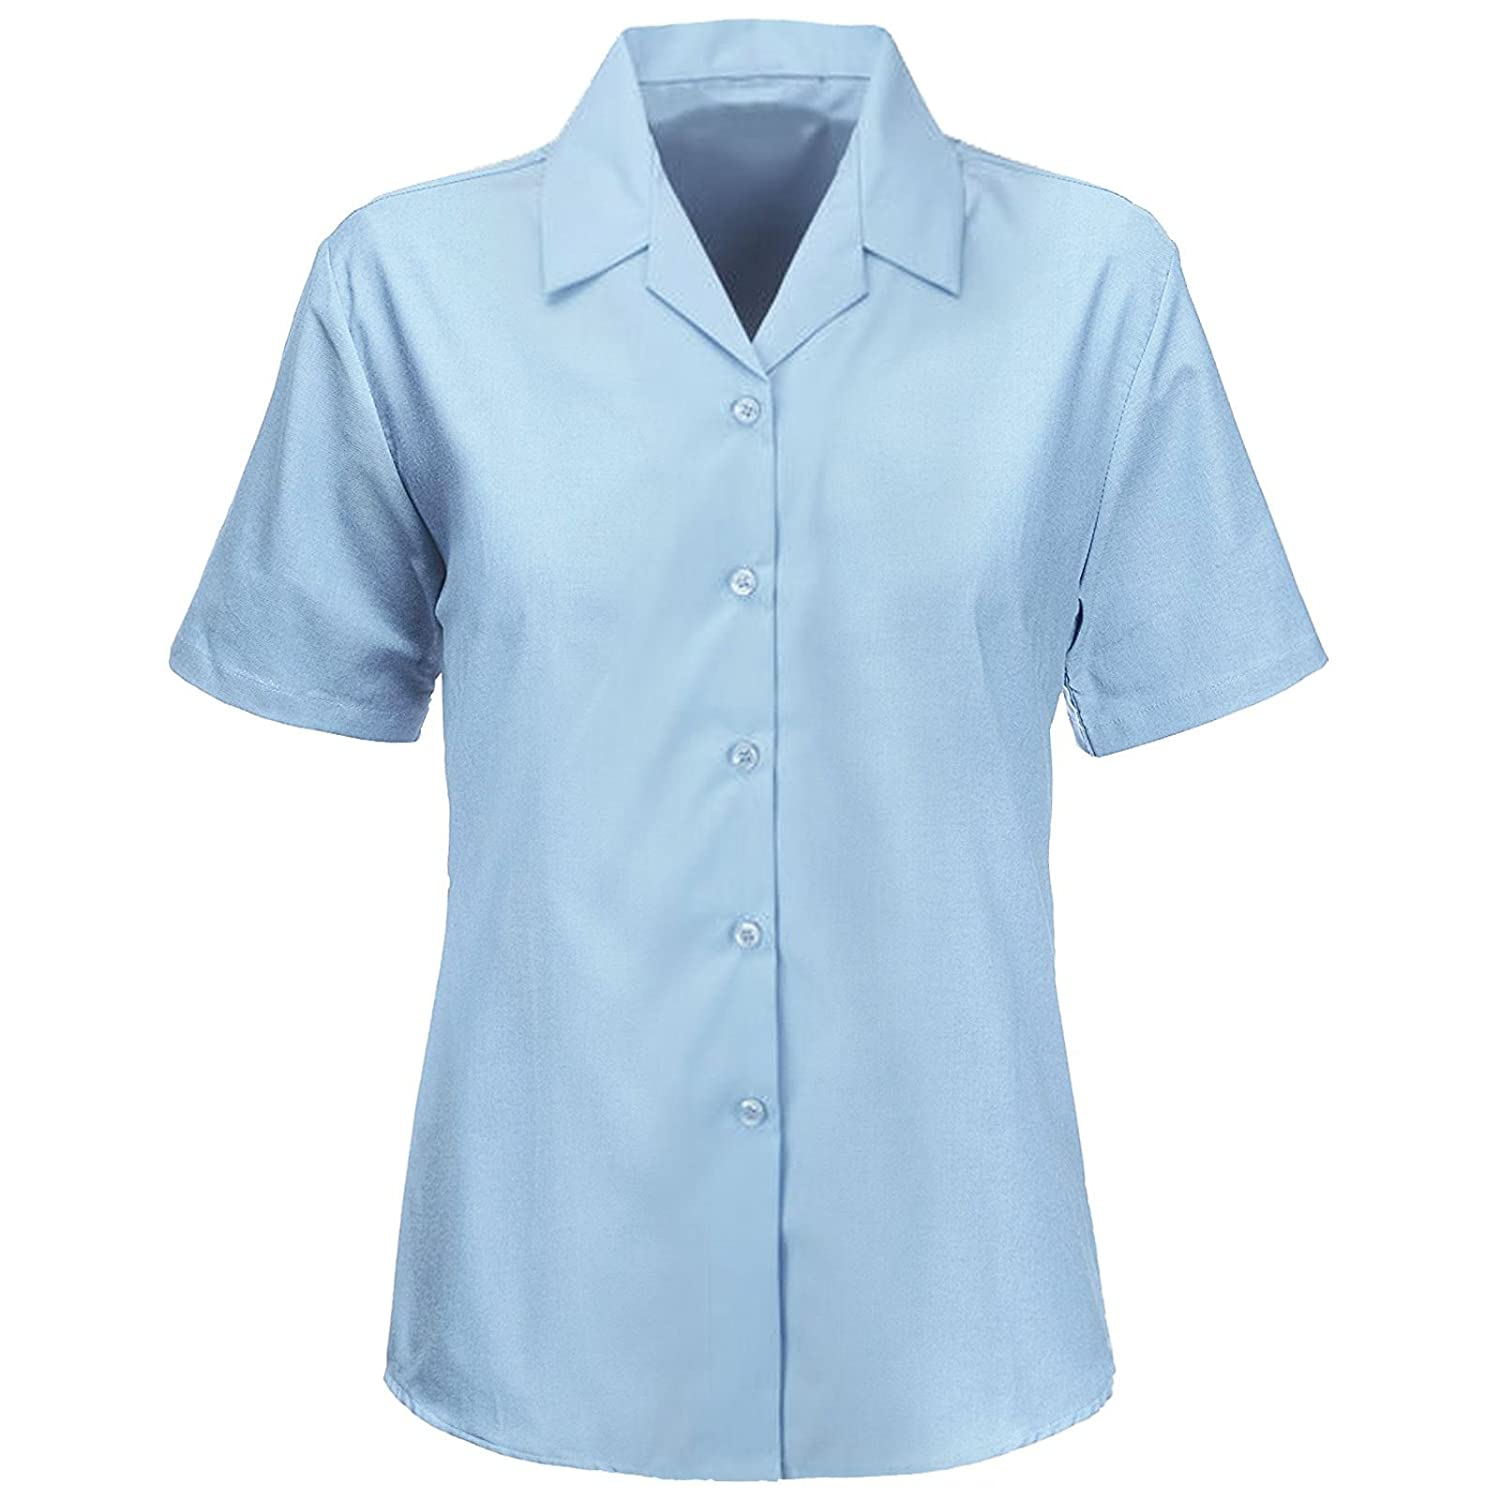 e1fed2a111a904 Kids Girls Revere Collared Blouses Shirts School Uniform Short Sleeves  Smart WEAR  Amazon.co.uk  Clothing